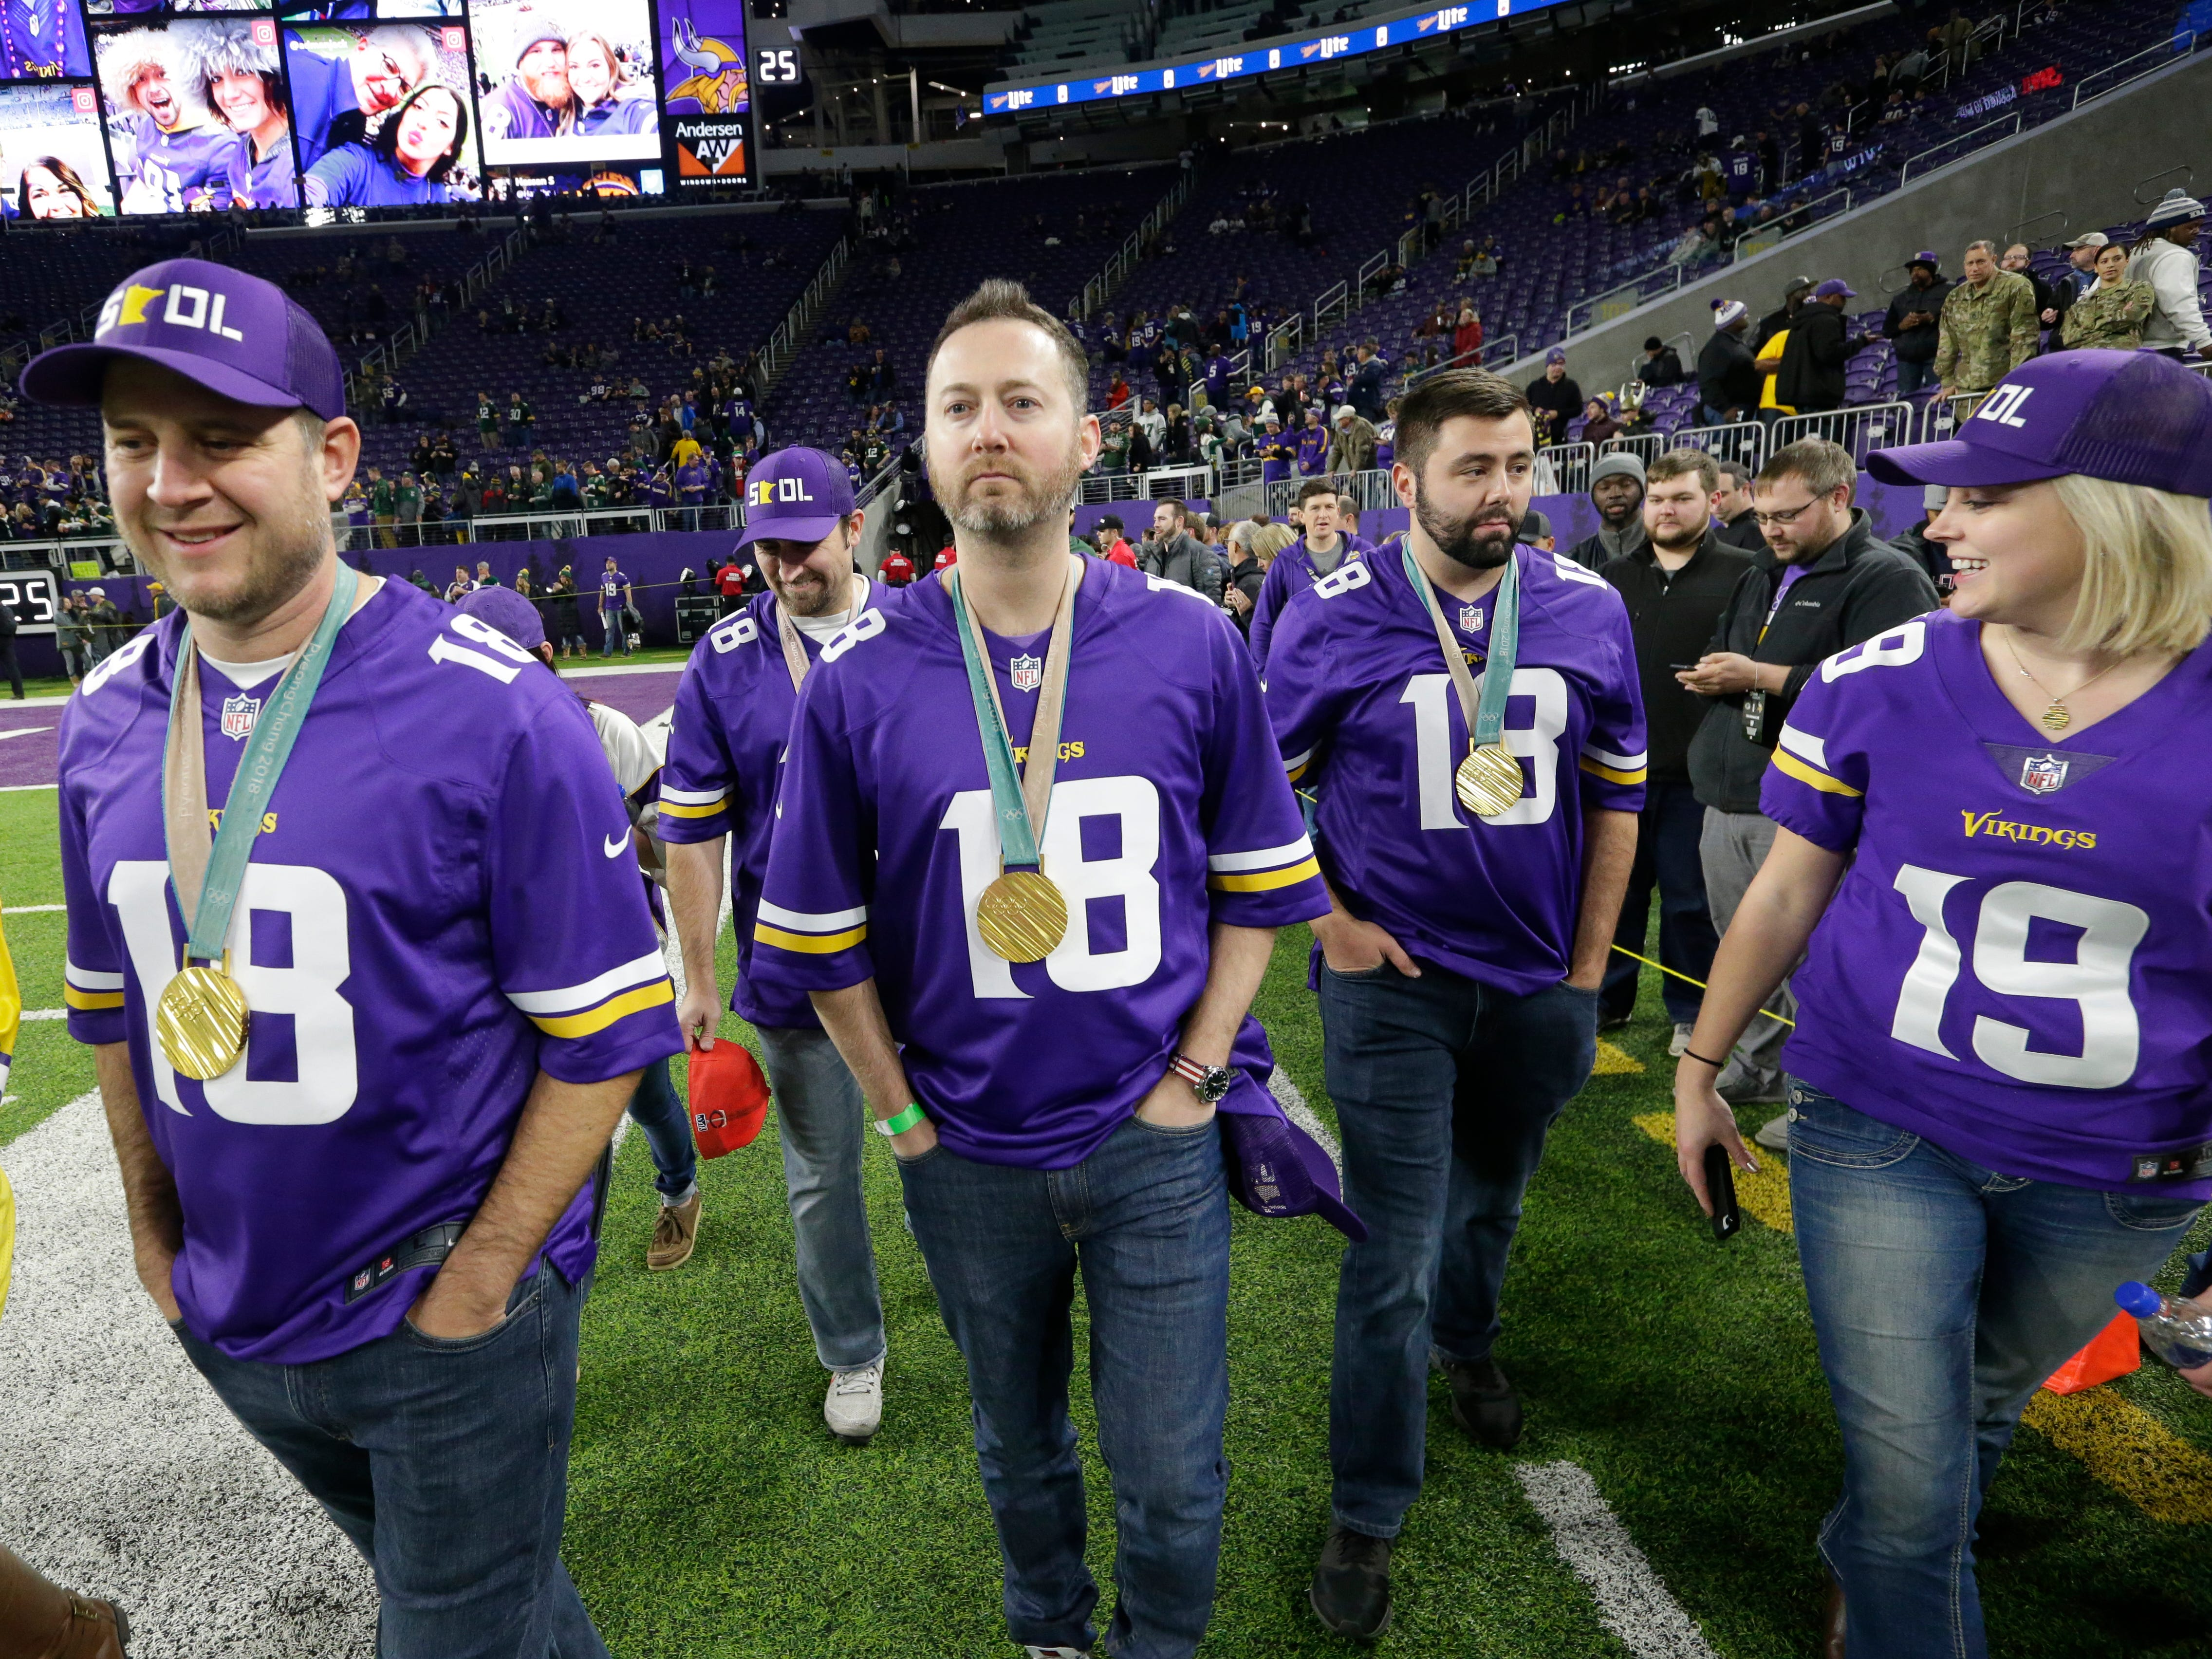 Members of the Olympic gold medal winning men's curling team members John Schuster (left), Joe Polo (rear), Tyler George and John Landsteiner are shown on the field before the Green Bay Packers game against the Minnesota Vikings Sunday, November 25, 2018 at U.S. Bank Stadium in Minneapolis, Minn.